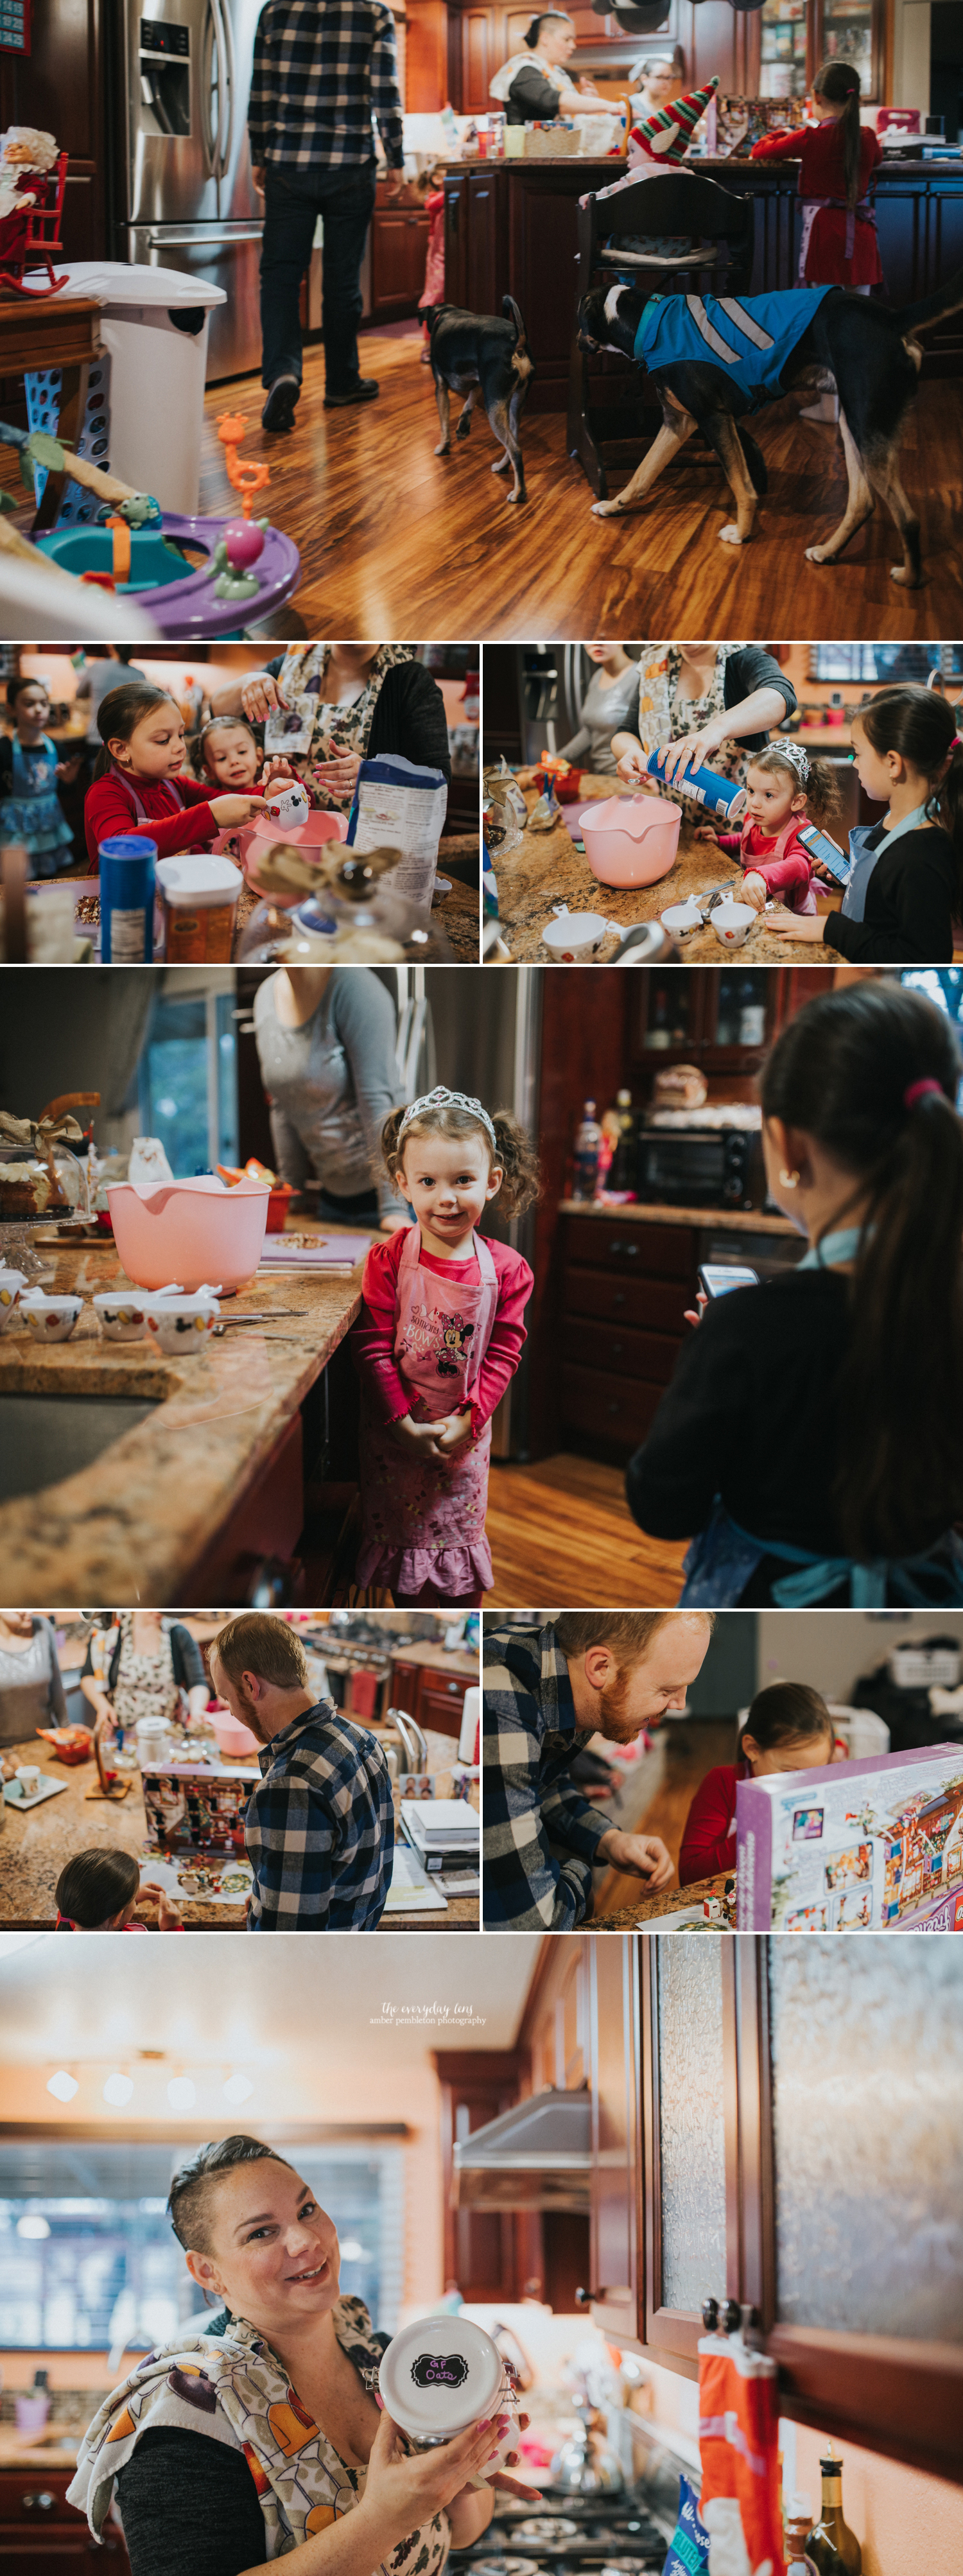 cooking-making-photography-session-reno.jpg